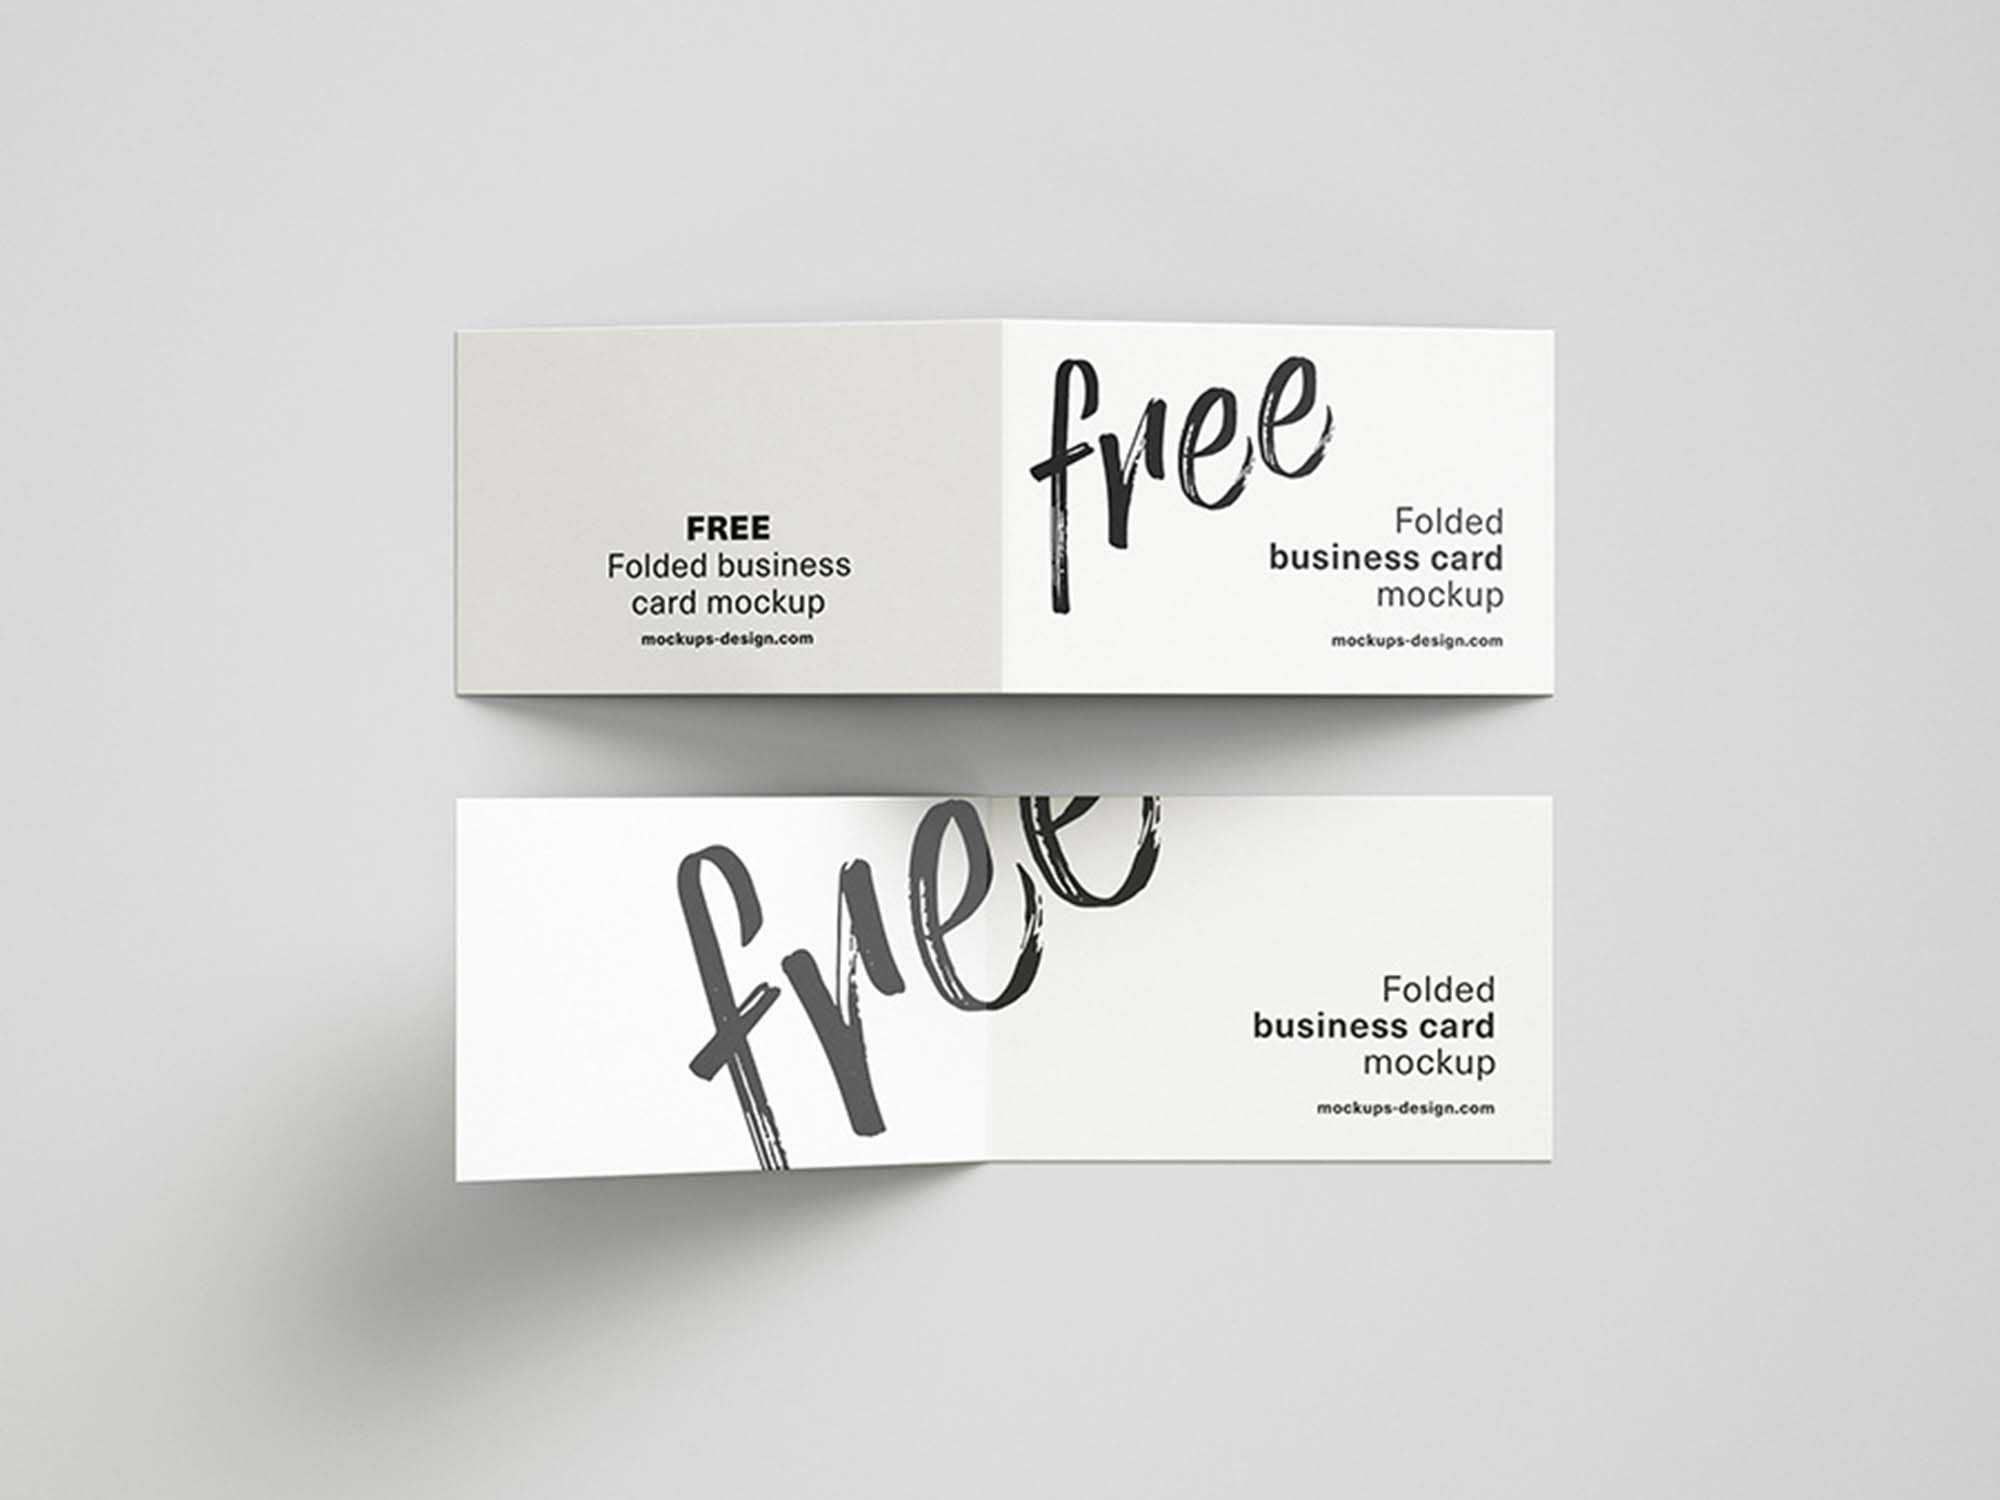 Free Folded Business Cards Mockup (Psd) In Fold Over Business Card Template